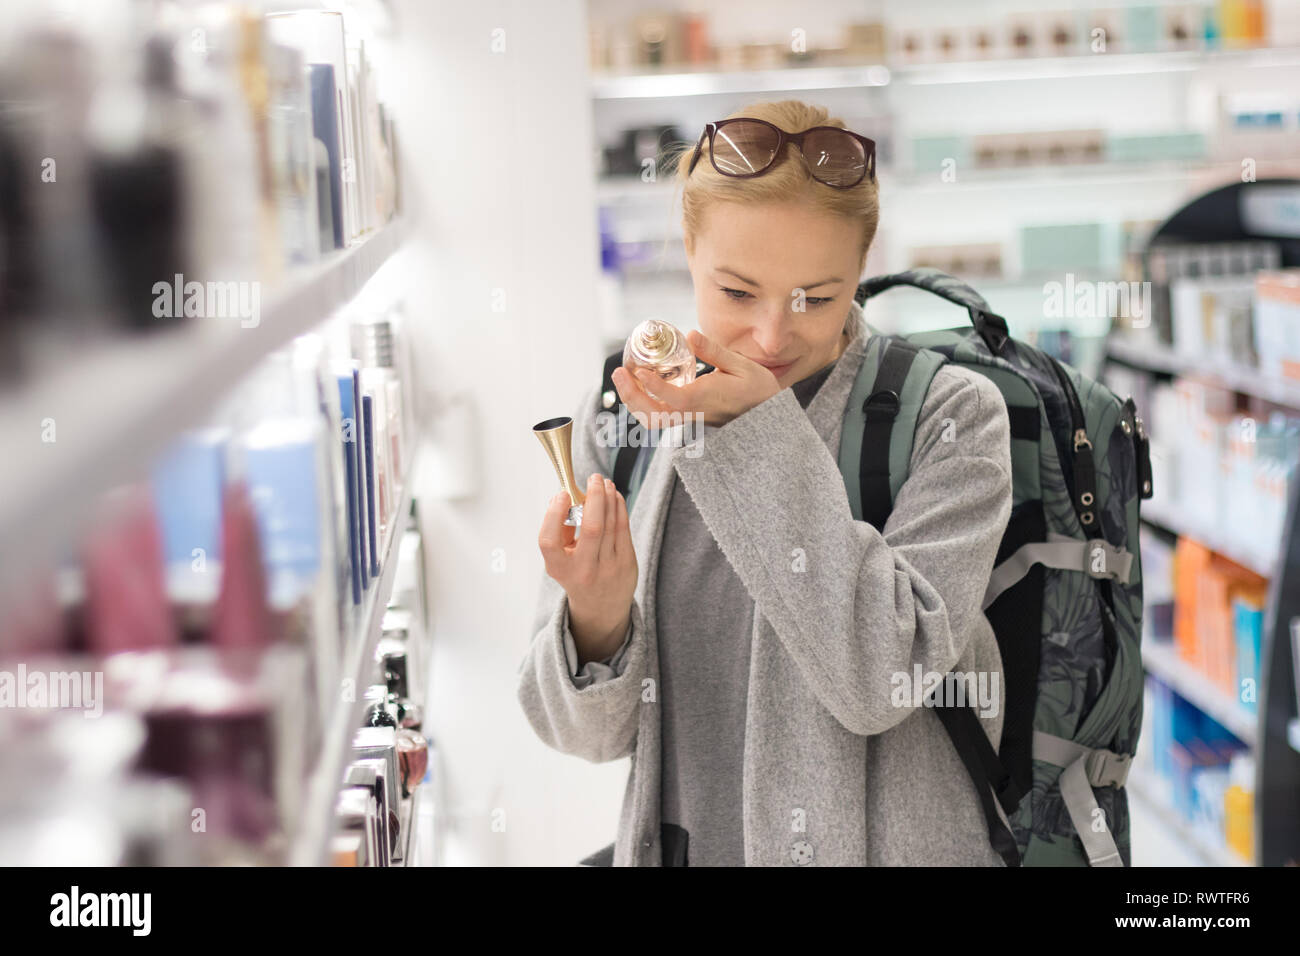 0d027205c6f0 Blond young female traveler wearing travel backpack choosing perfume in airport  duty free store. -